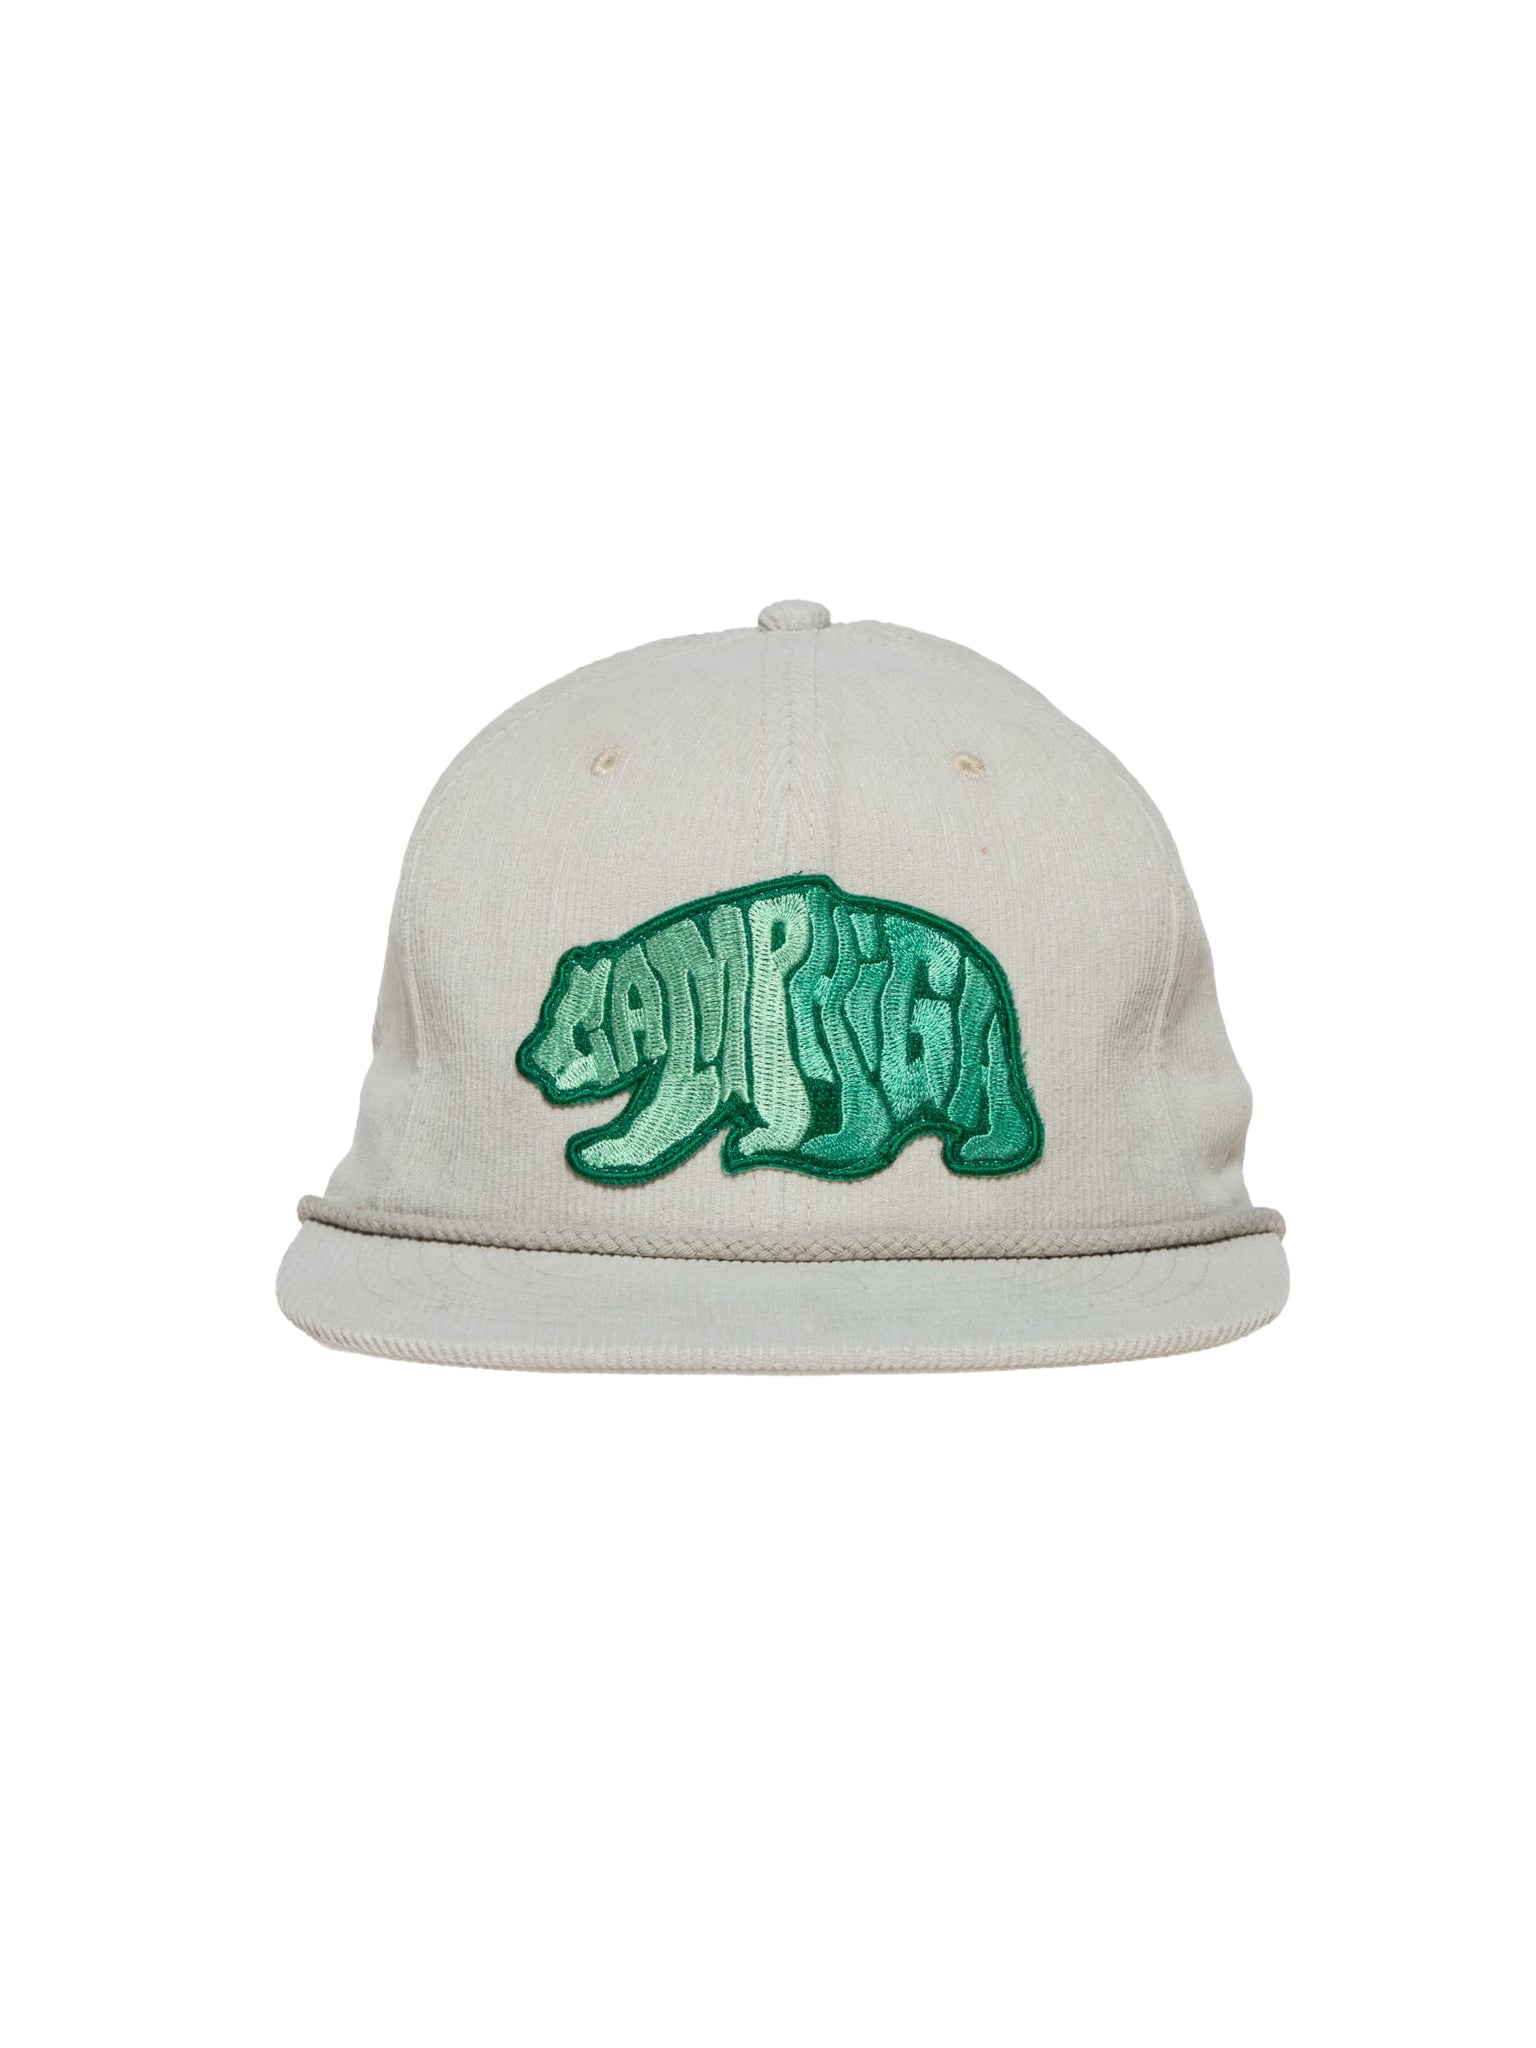 Camp High Natural Cali Bear Cord Cap